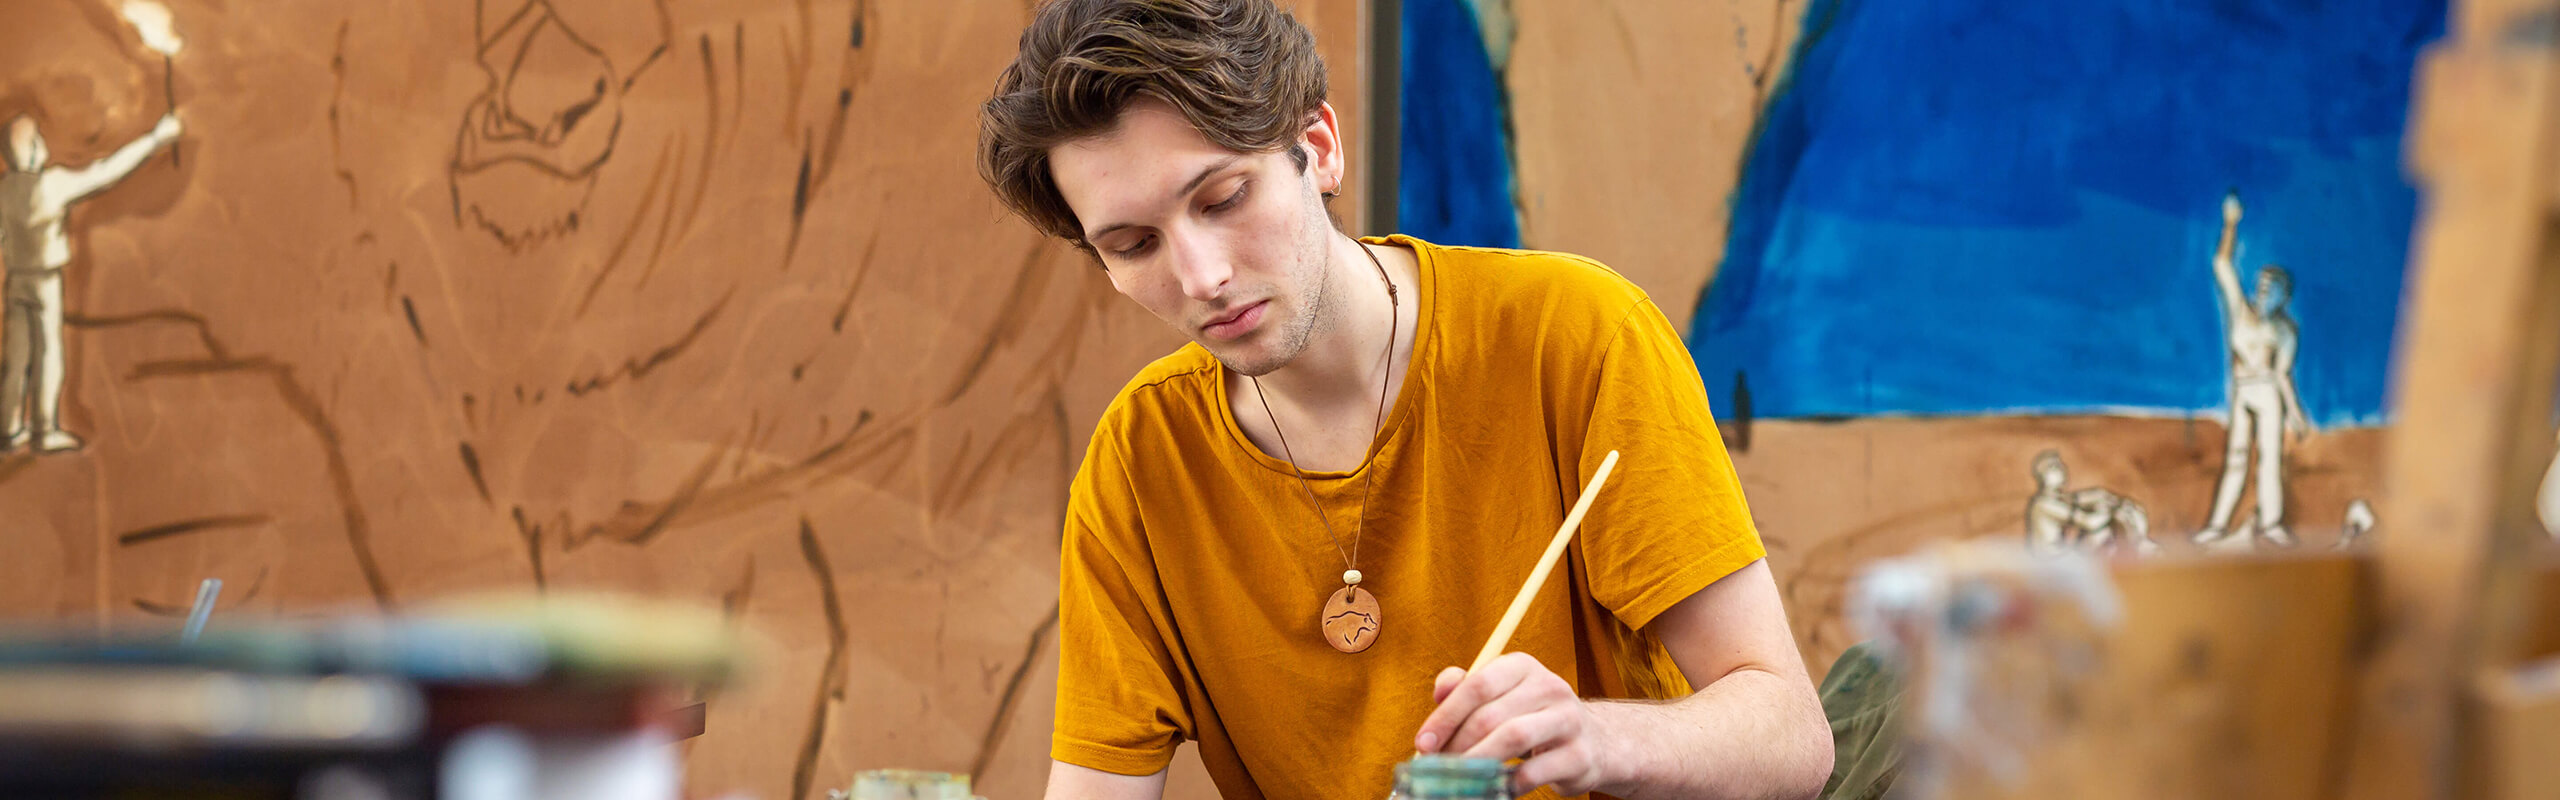 A Fine Art student working in his studio space